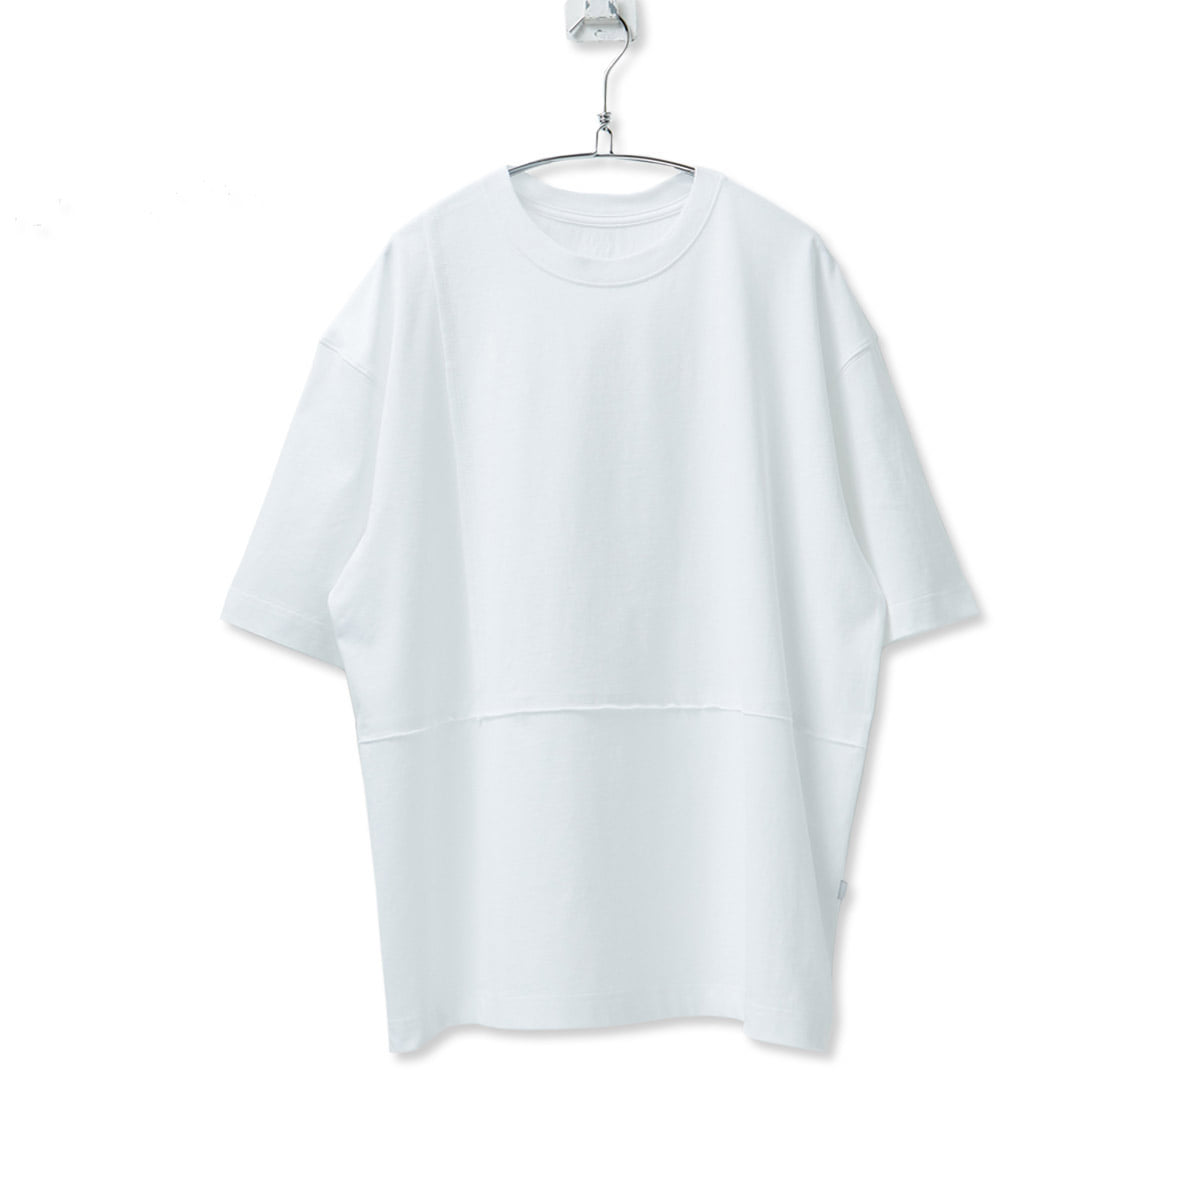 [YOUTH] CUT-OFF T-SHIRT 'WHITE'